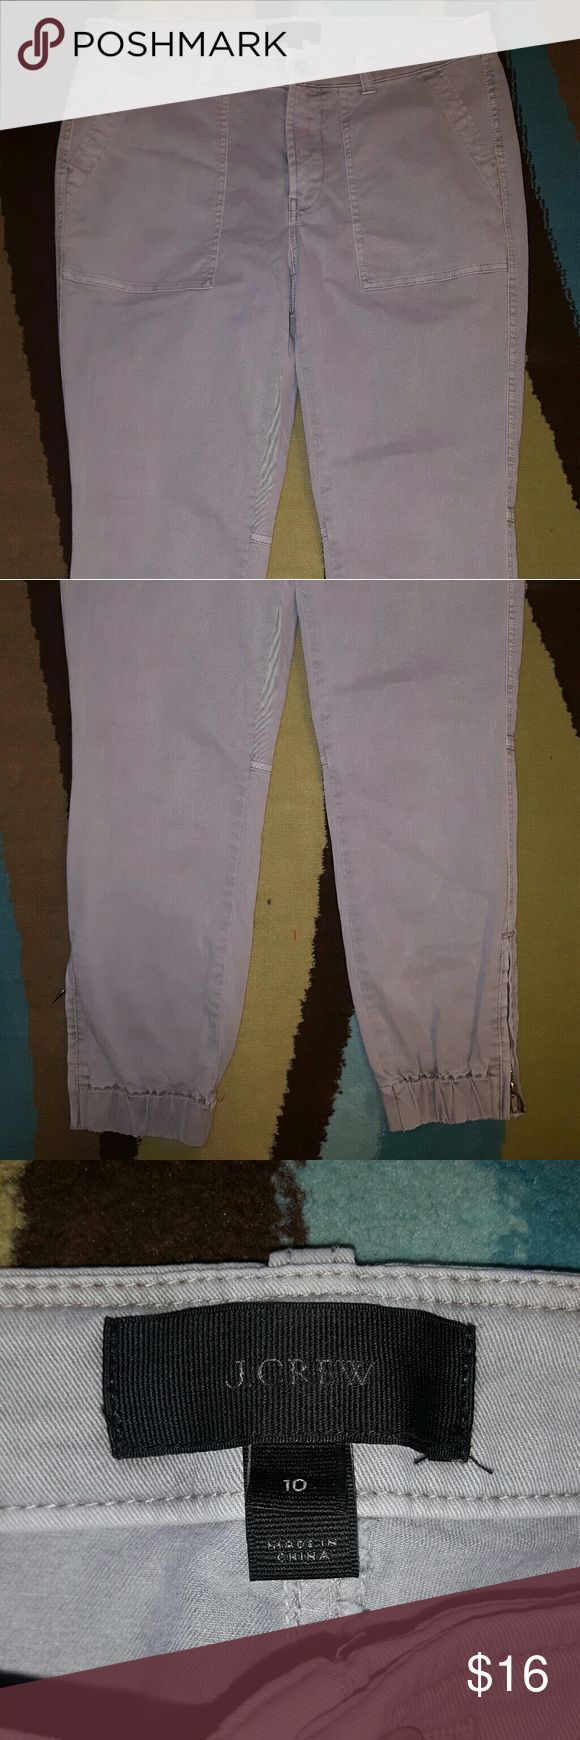 J.CREW GRAY CHINO JOGGER SZ 10 EUC.  FEEL FREE TO MAKE AN OFFER!!! J. Crew Pants Ankle & Cropped